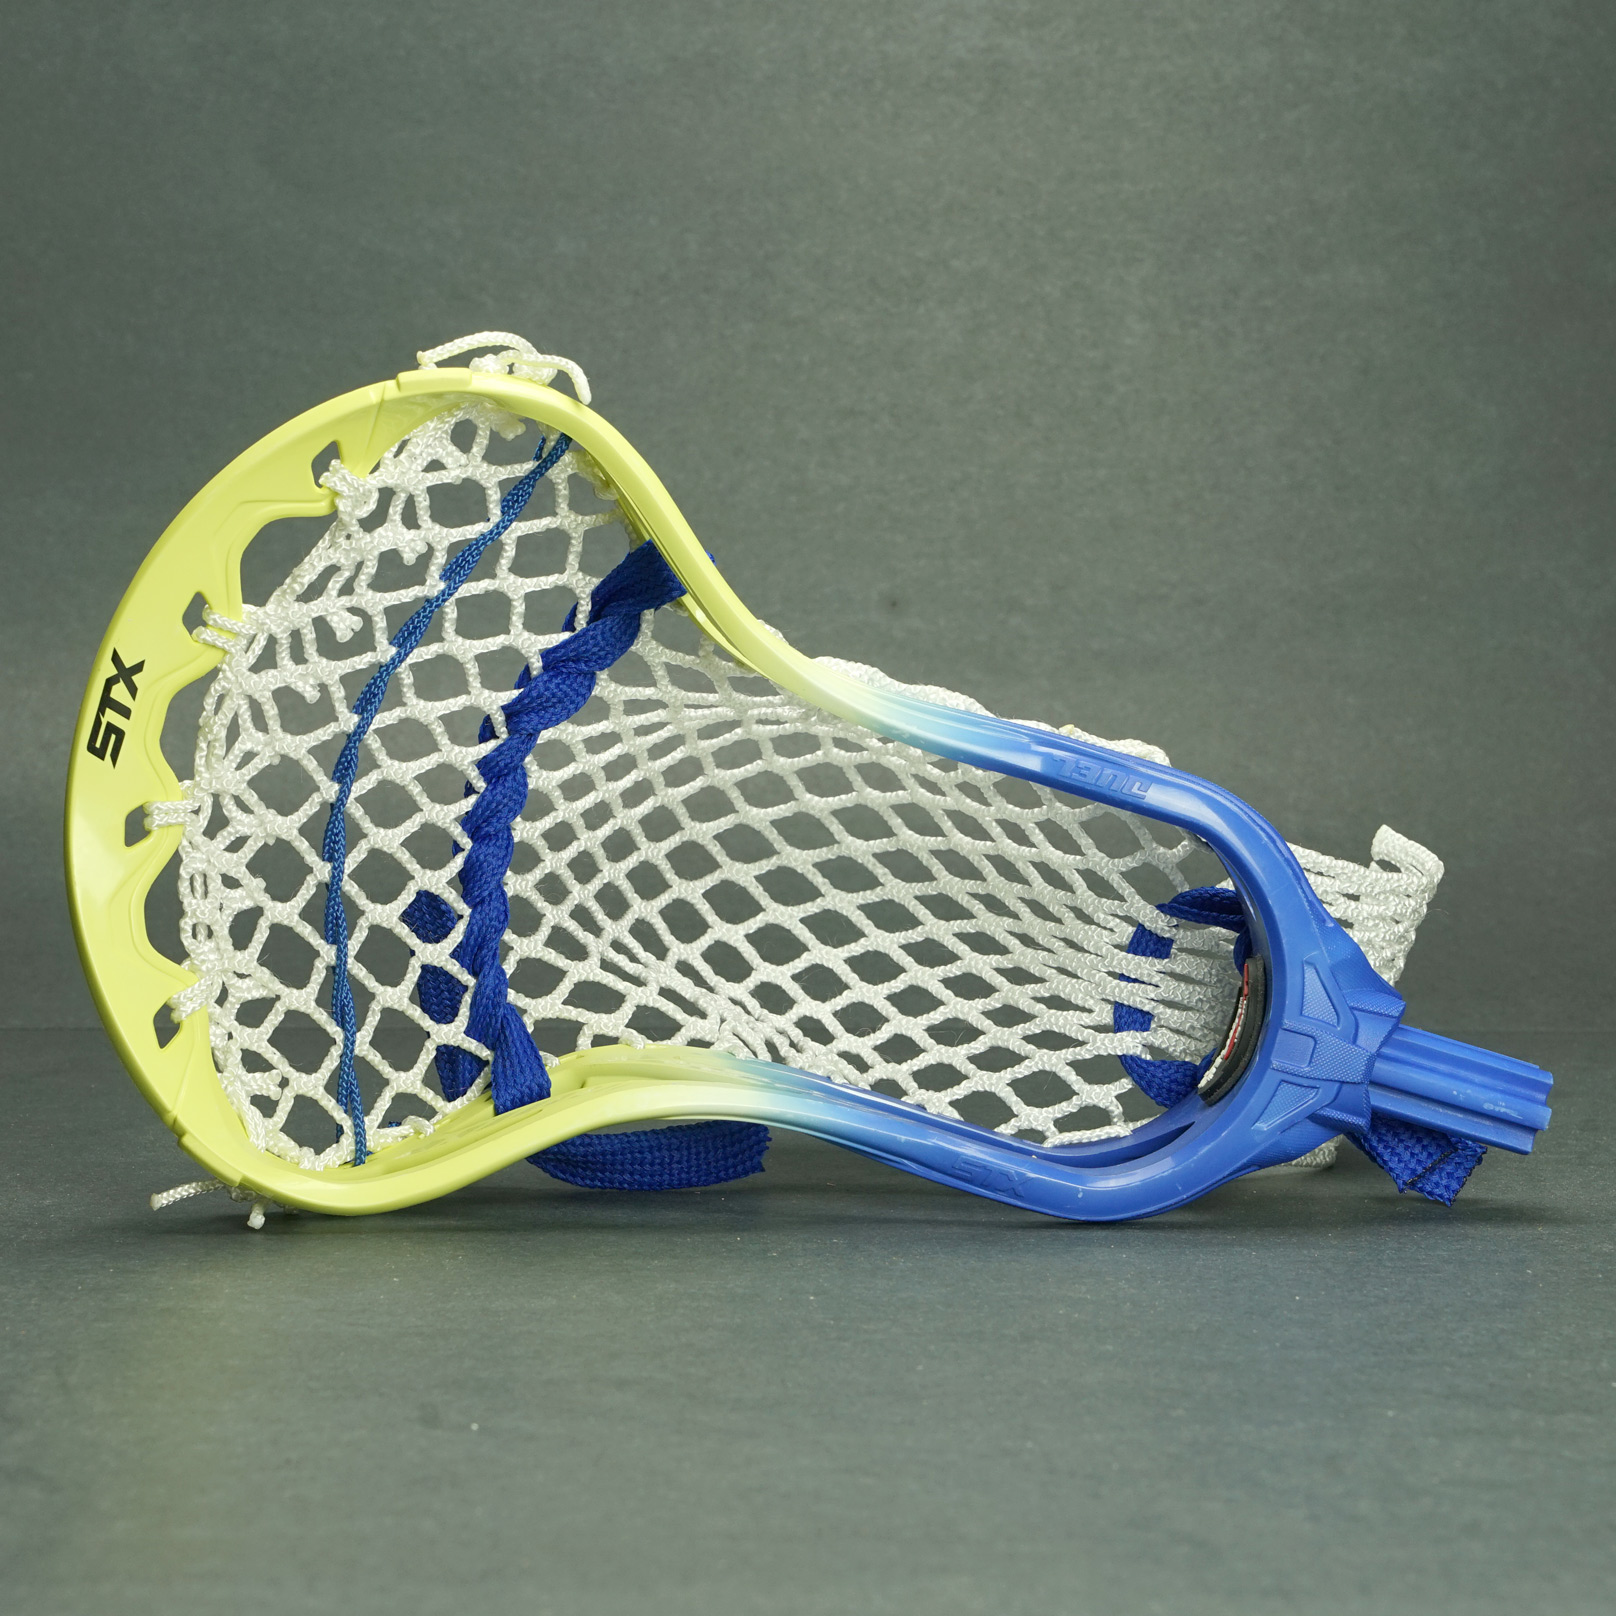 STX DUEL U 2 COLOR FADE W/ FACEOFF POCKET